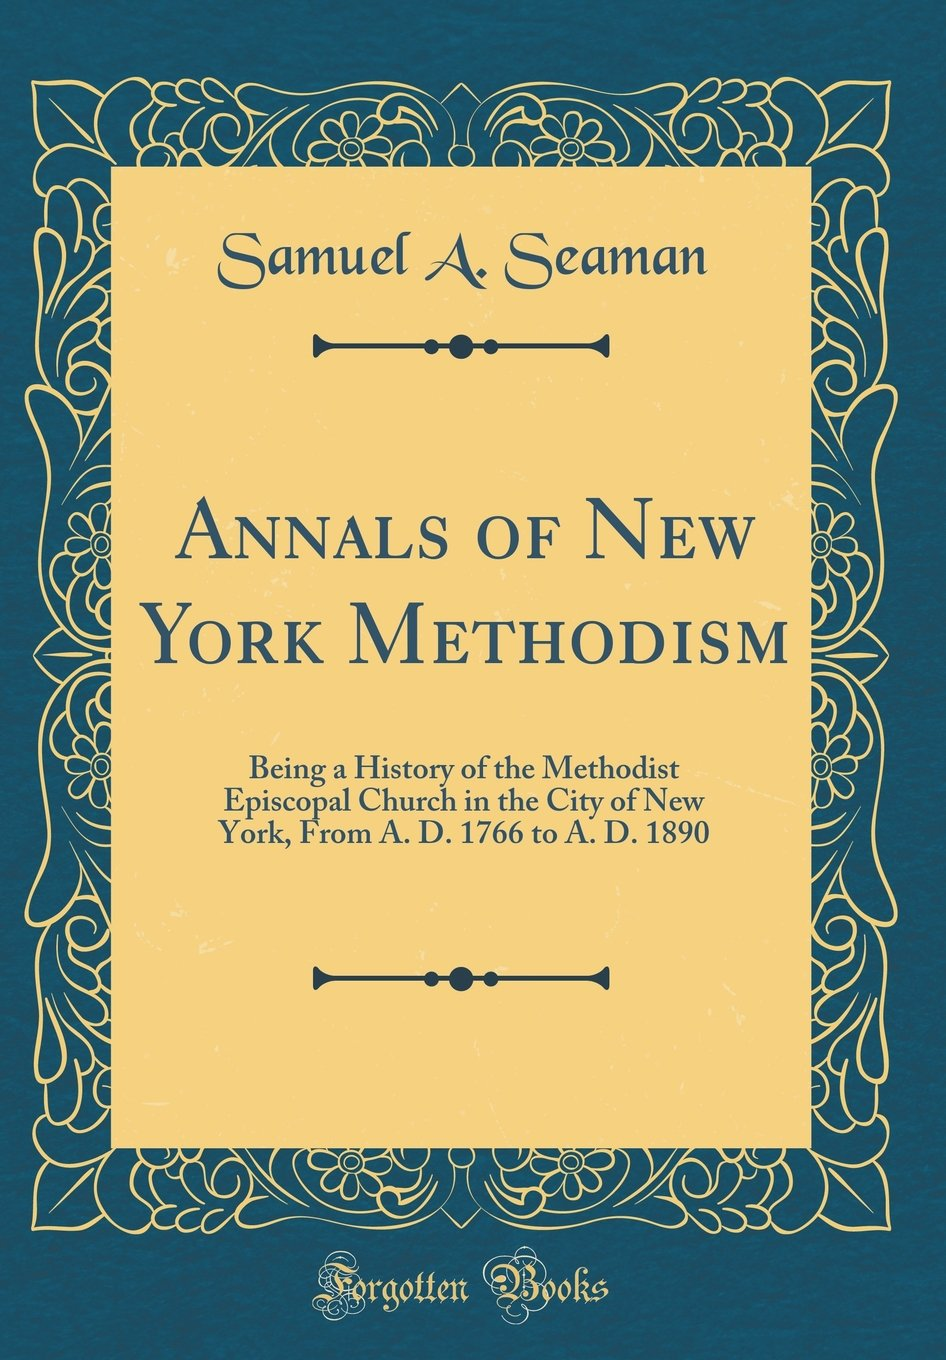 Annals of New York Methodism: Being a History of the Methodist Episcopal Church in the City of New York, From A. D. 1766 to A. D. 1890 (Classic Reprint) pdf epub